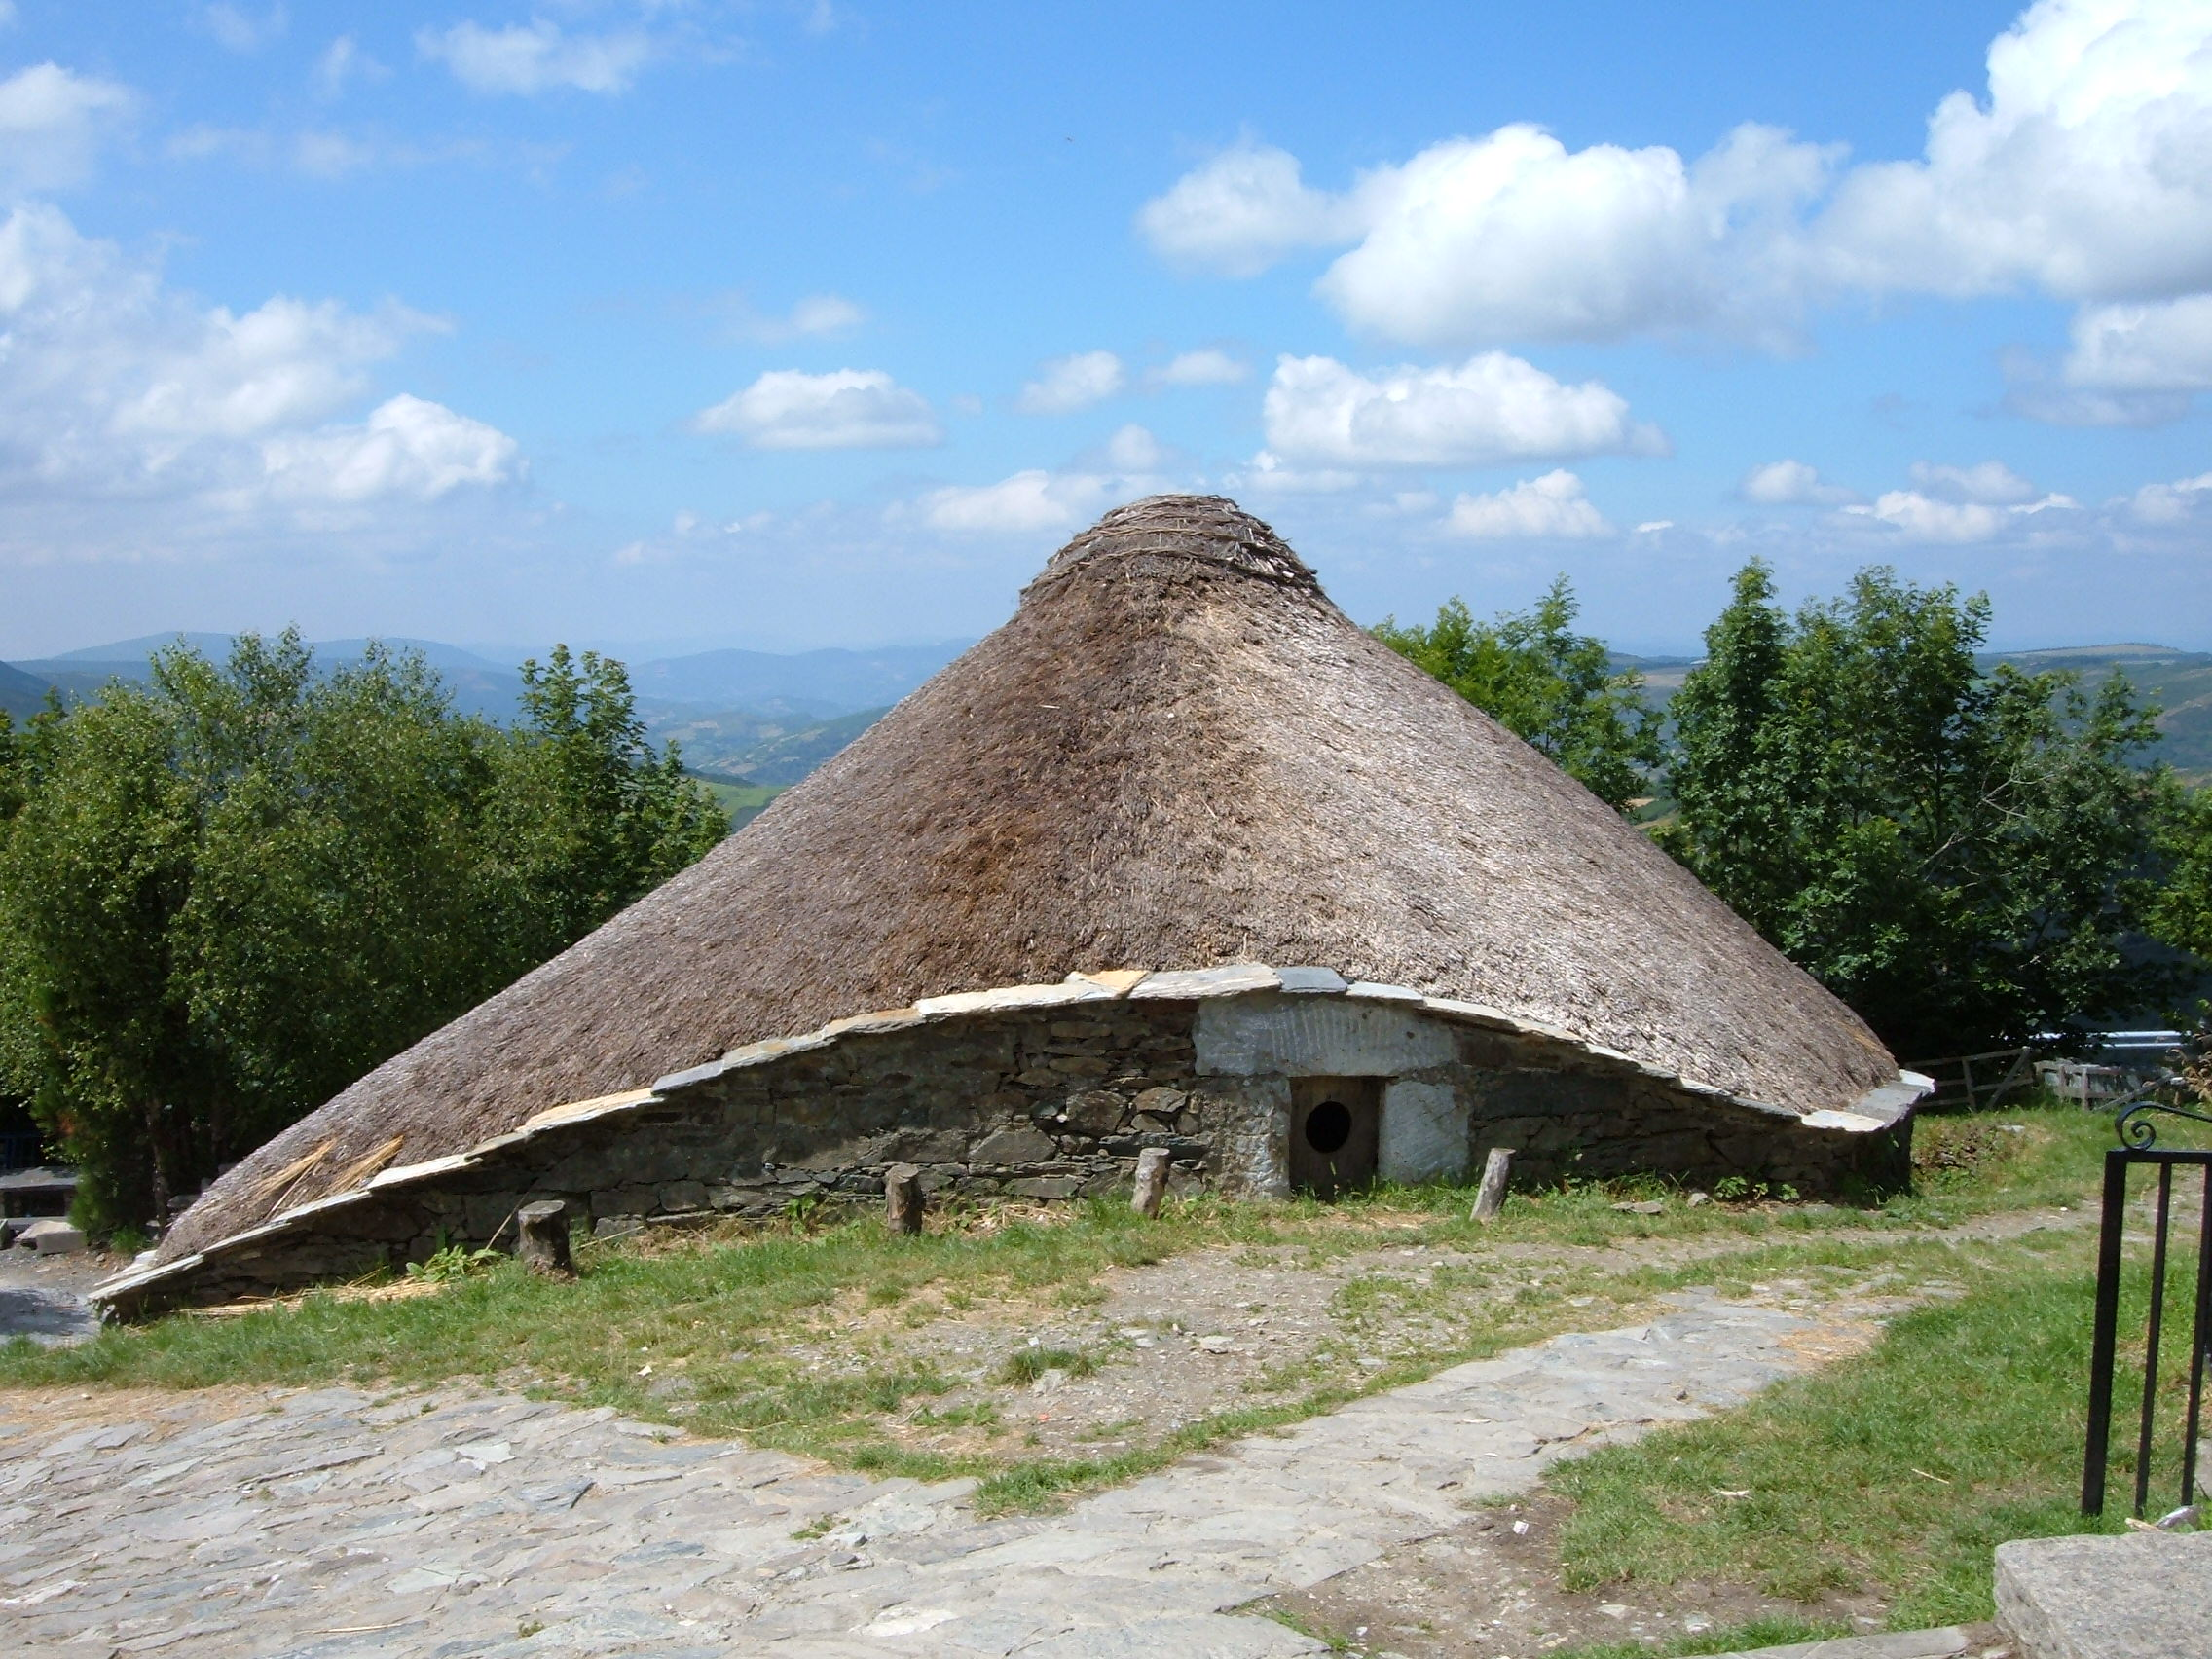 People who lived in rounded houses with thatched roofs about 1500s ...